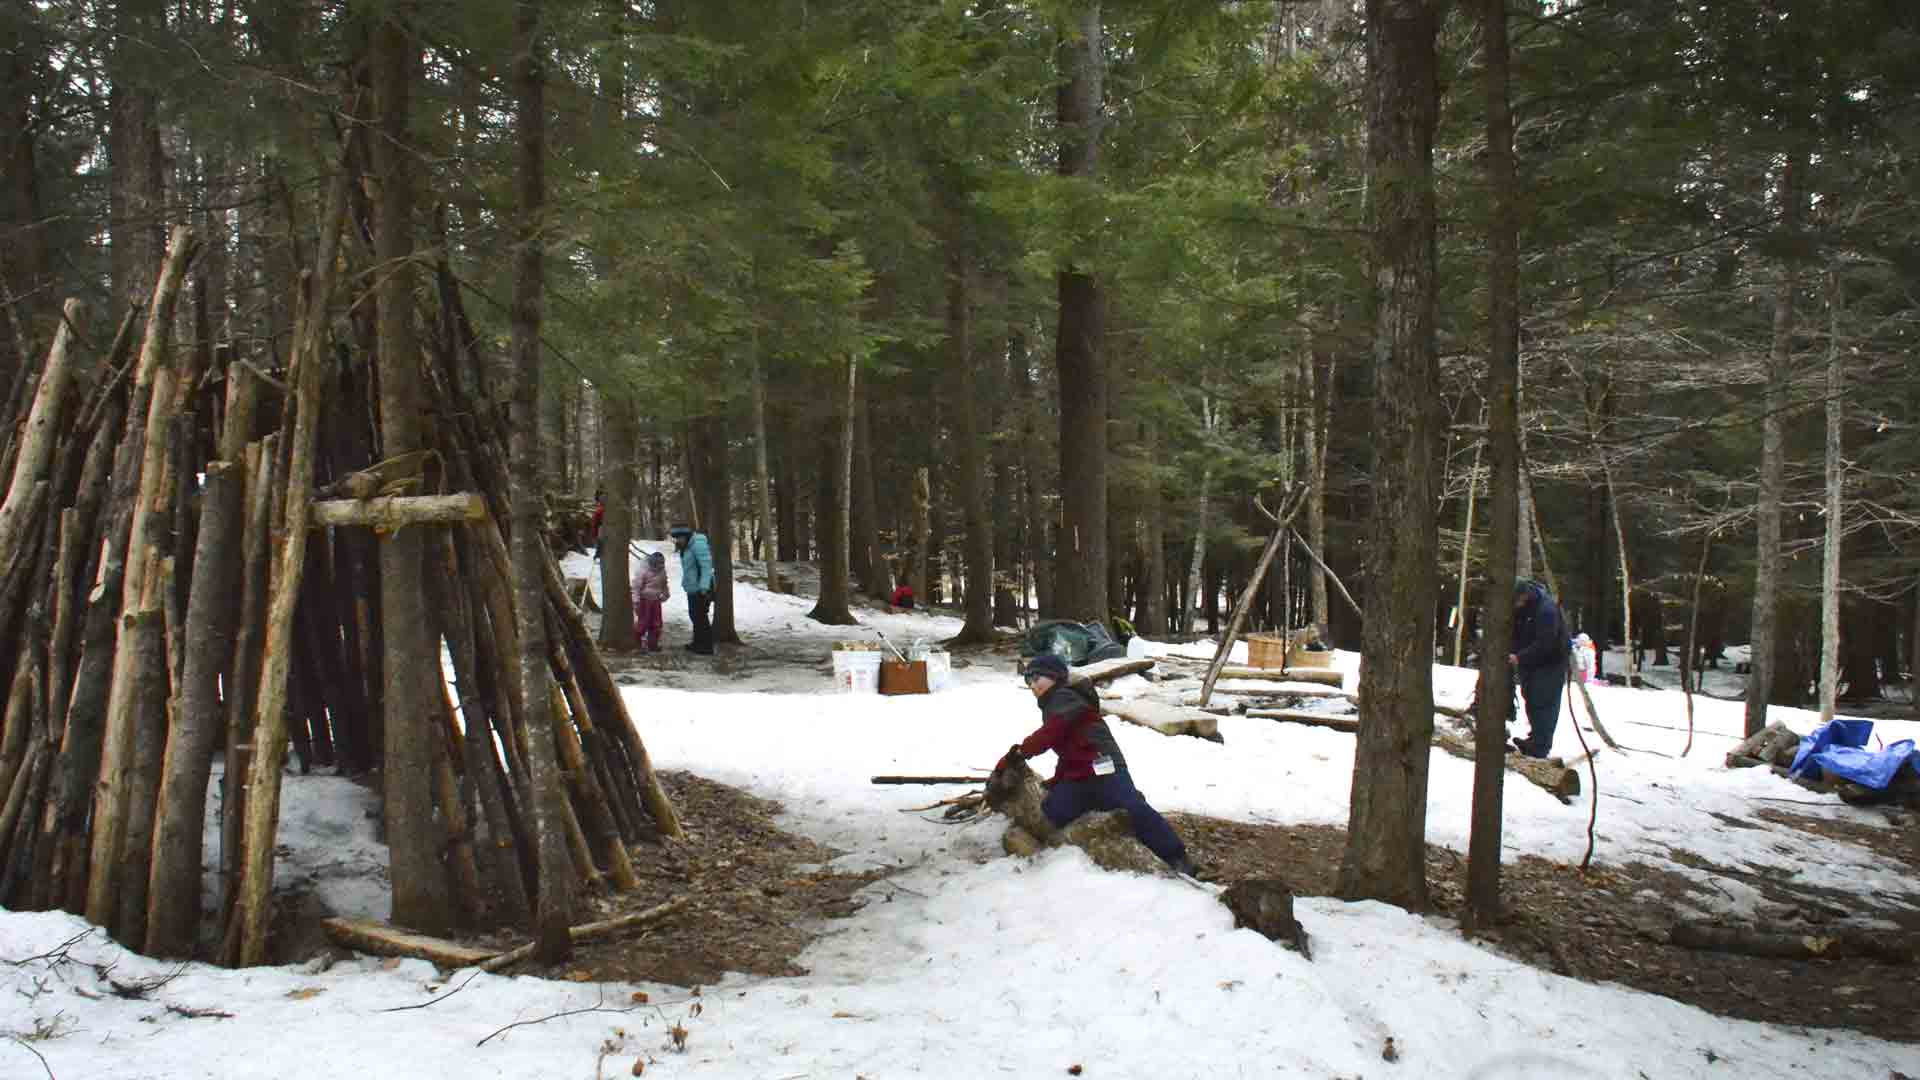 Students and teachers at the Forest Monday home site they've built in the woods next to their school in Quechee, Vermont.